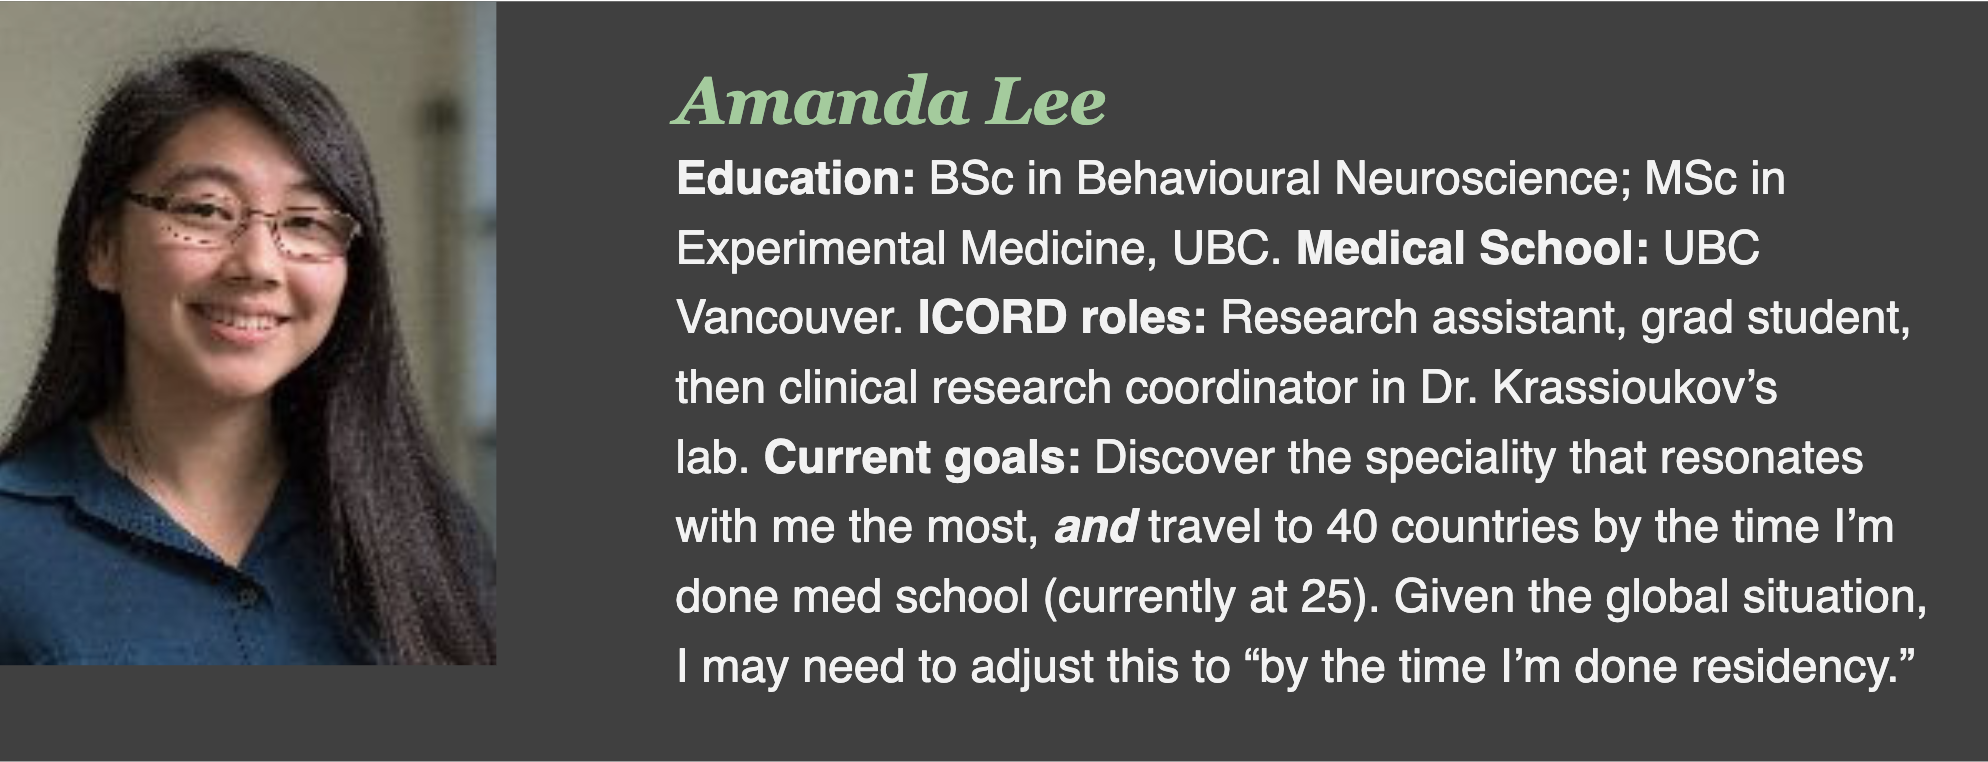 """Education: BSc in Behavioural Neuroscience; MSc in Experimental Medicine, UBC. Medical School: UBC Vancouver. ICORD roles: Research assistant, grad student, then clinical research coordinator in Dr. Krassioukov's lab. Current goals: Discover the speciality that resonates with me the most, and travel to 40 countries by the time I'm done med school (currently at 25). Given the global situation, I may need to adjust this to """"by the time I'm done residency."""""""